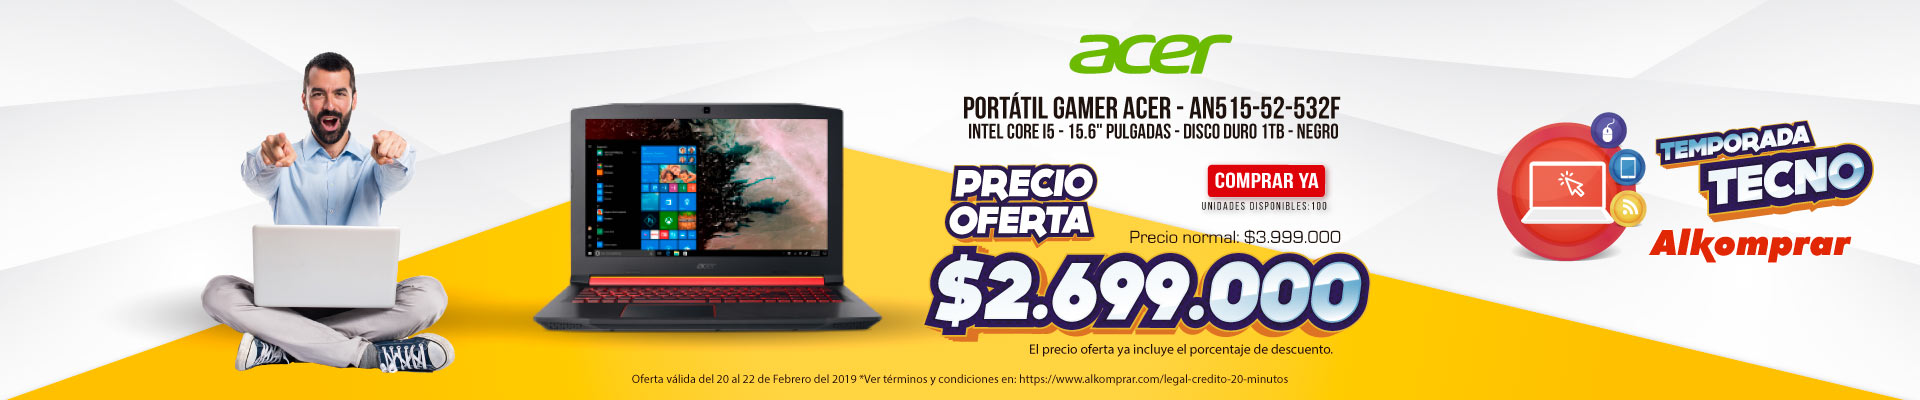 BP ALKP Portátil Gamer ACER - AN515-52-532F